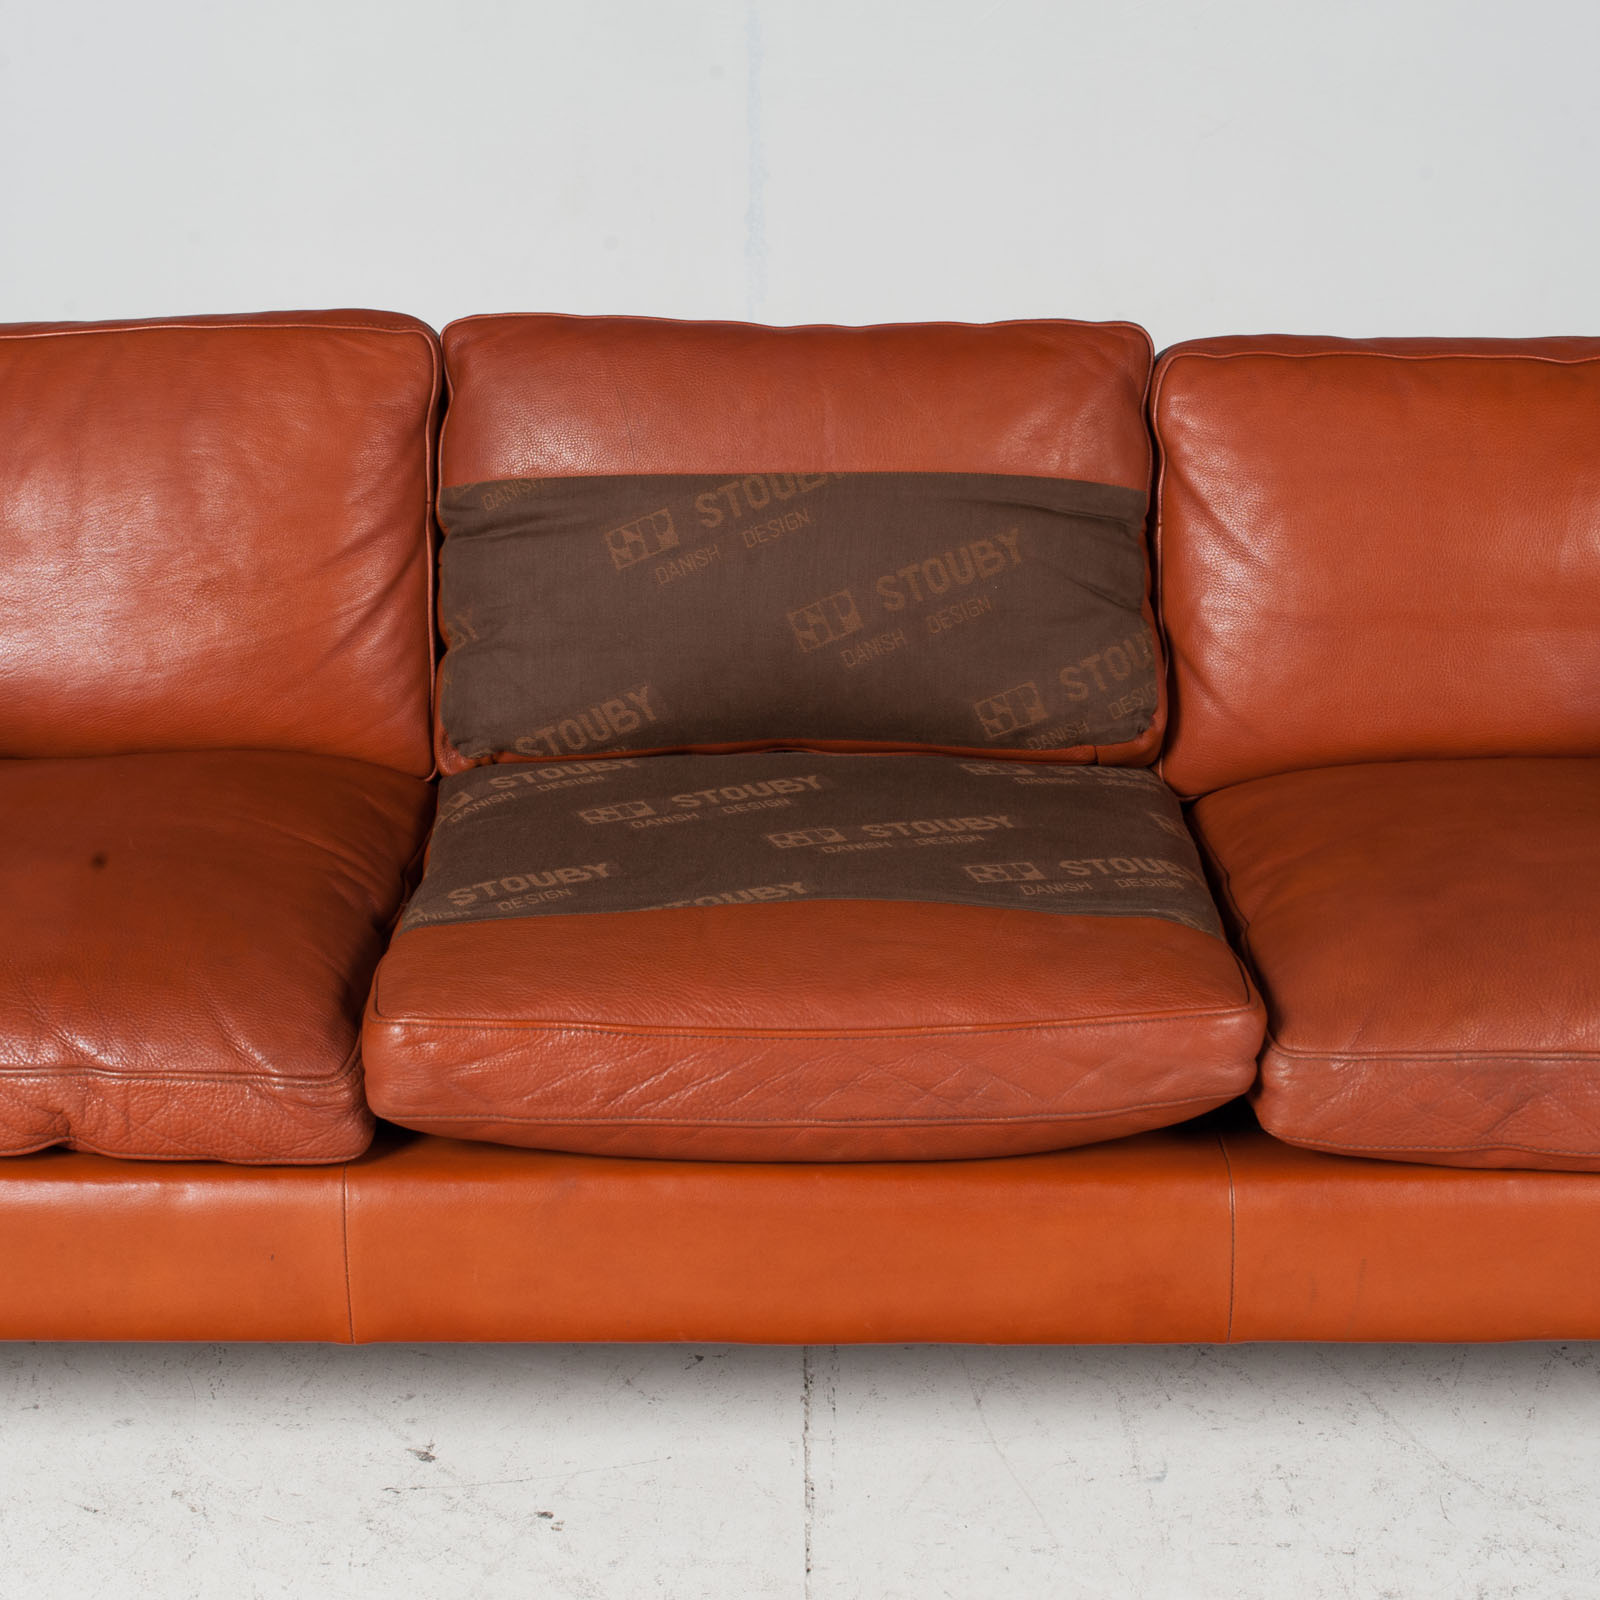 3 Seat Sofa By Stouby In Tan Leather, 1960s, Denmark 1